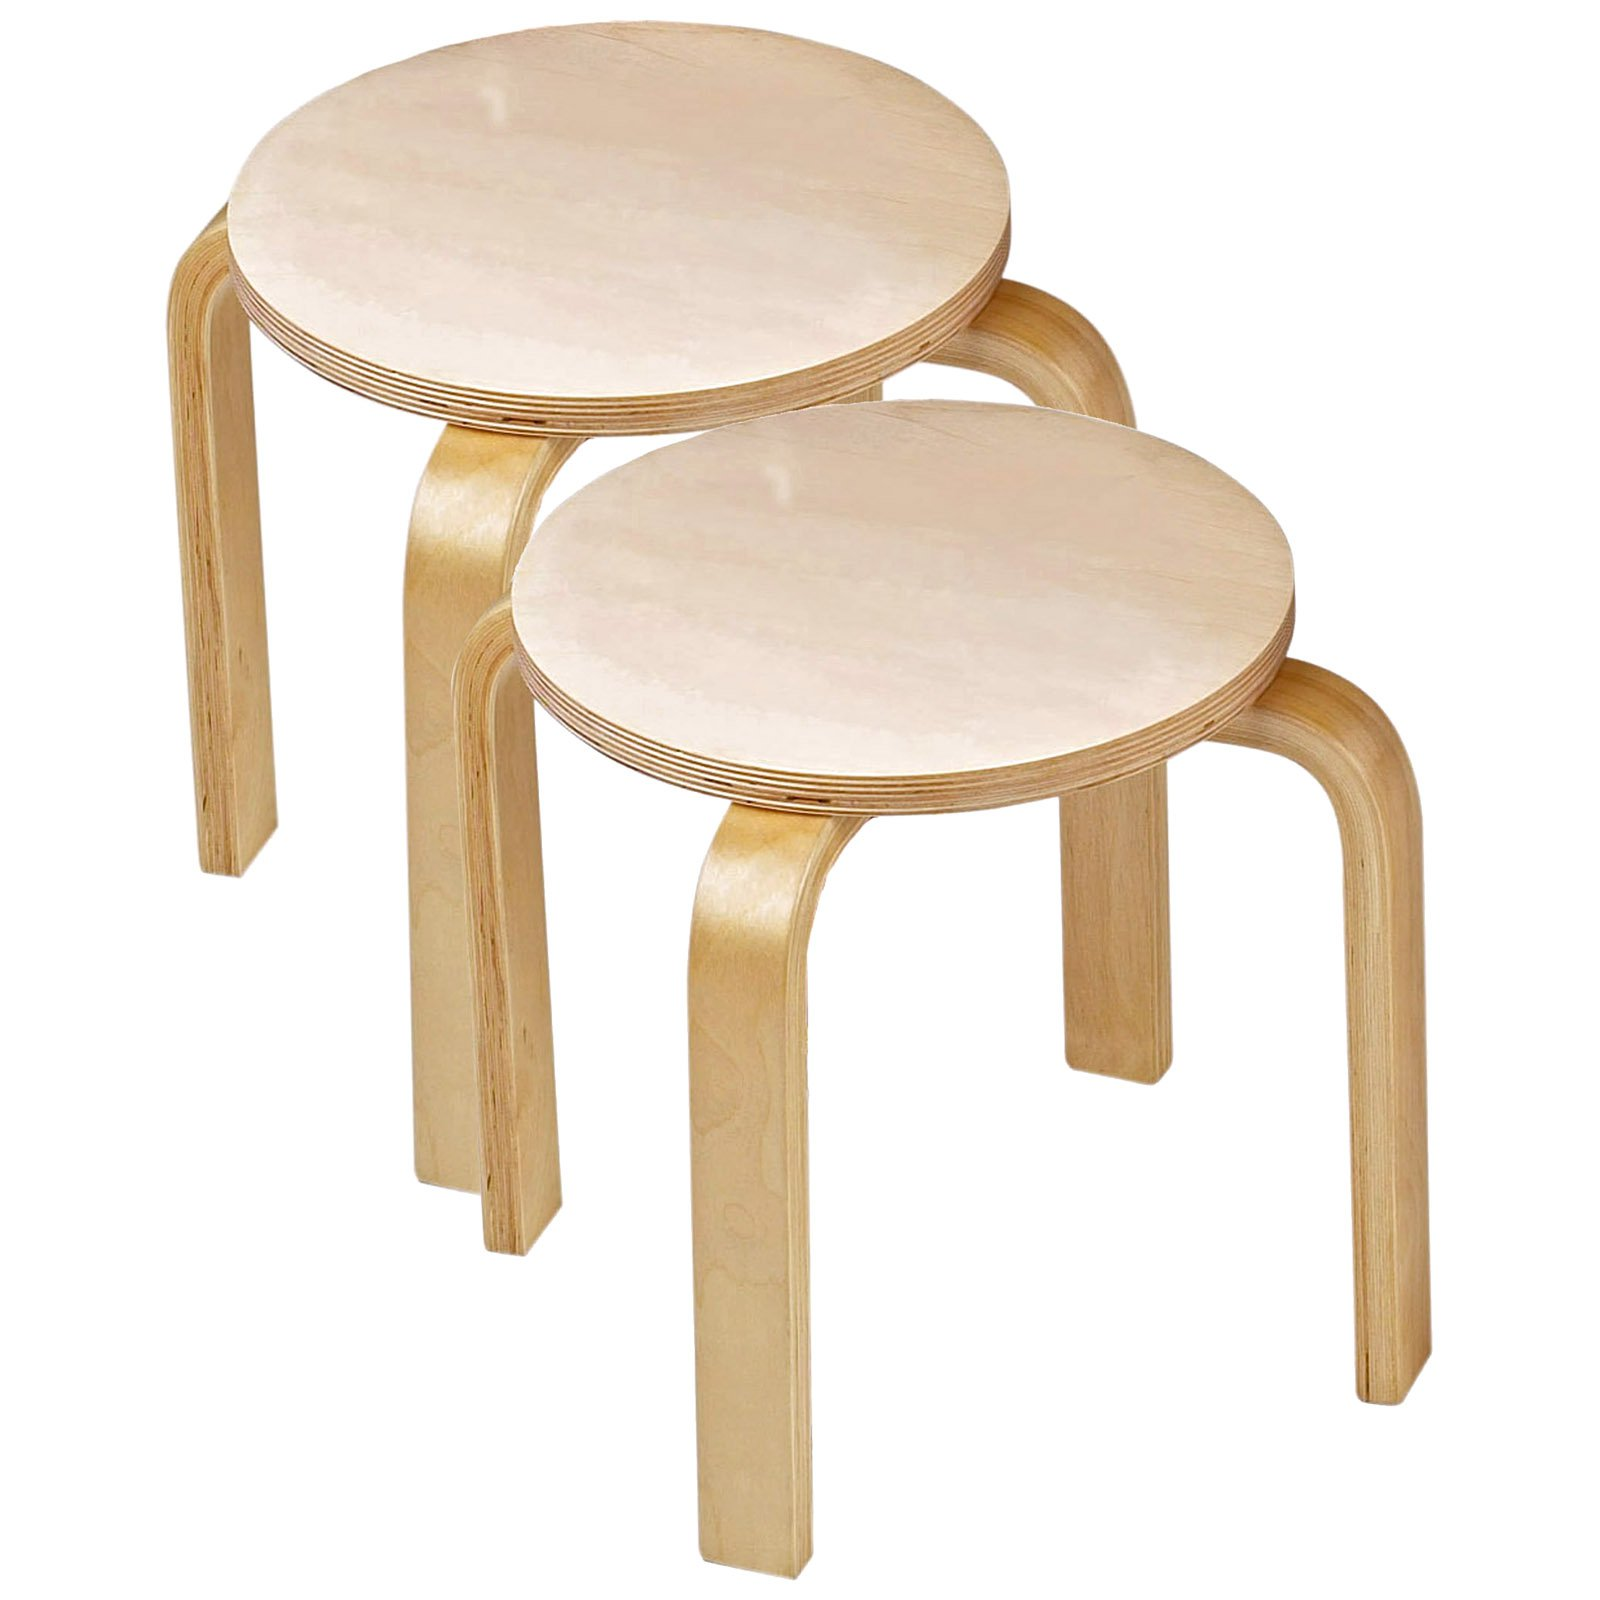 Anatex Wooden Sitting Stools Set of Two by Anatex